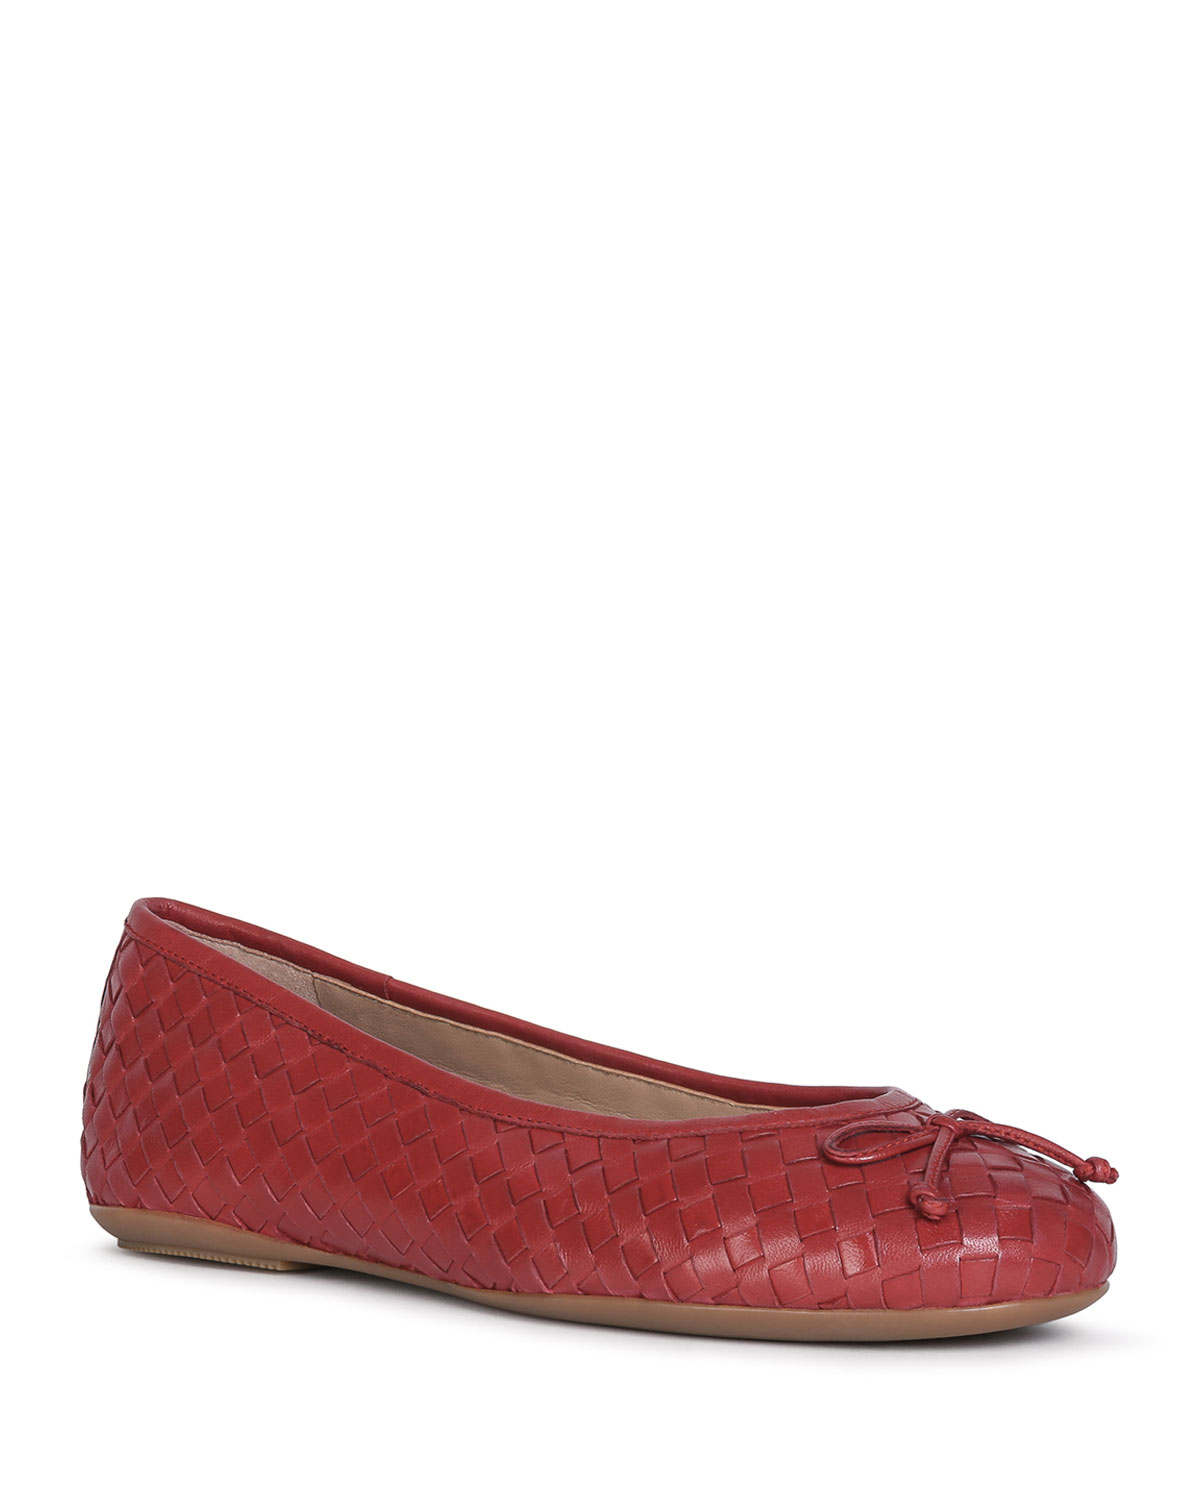 Geox WOVEN LEATHER BOW BALLERINA FLATS, RED